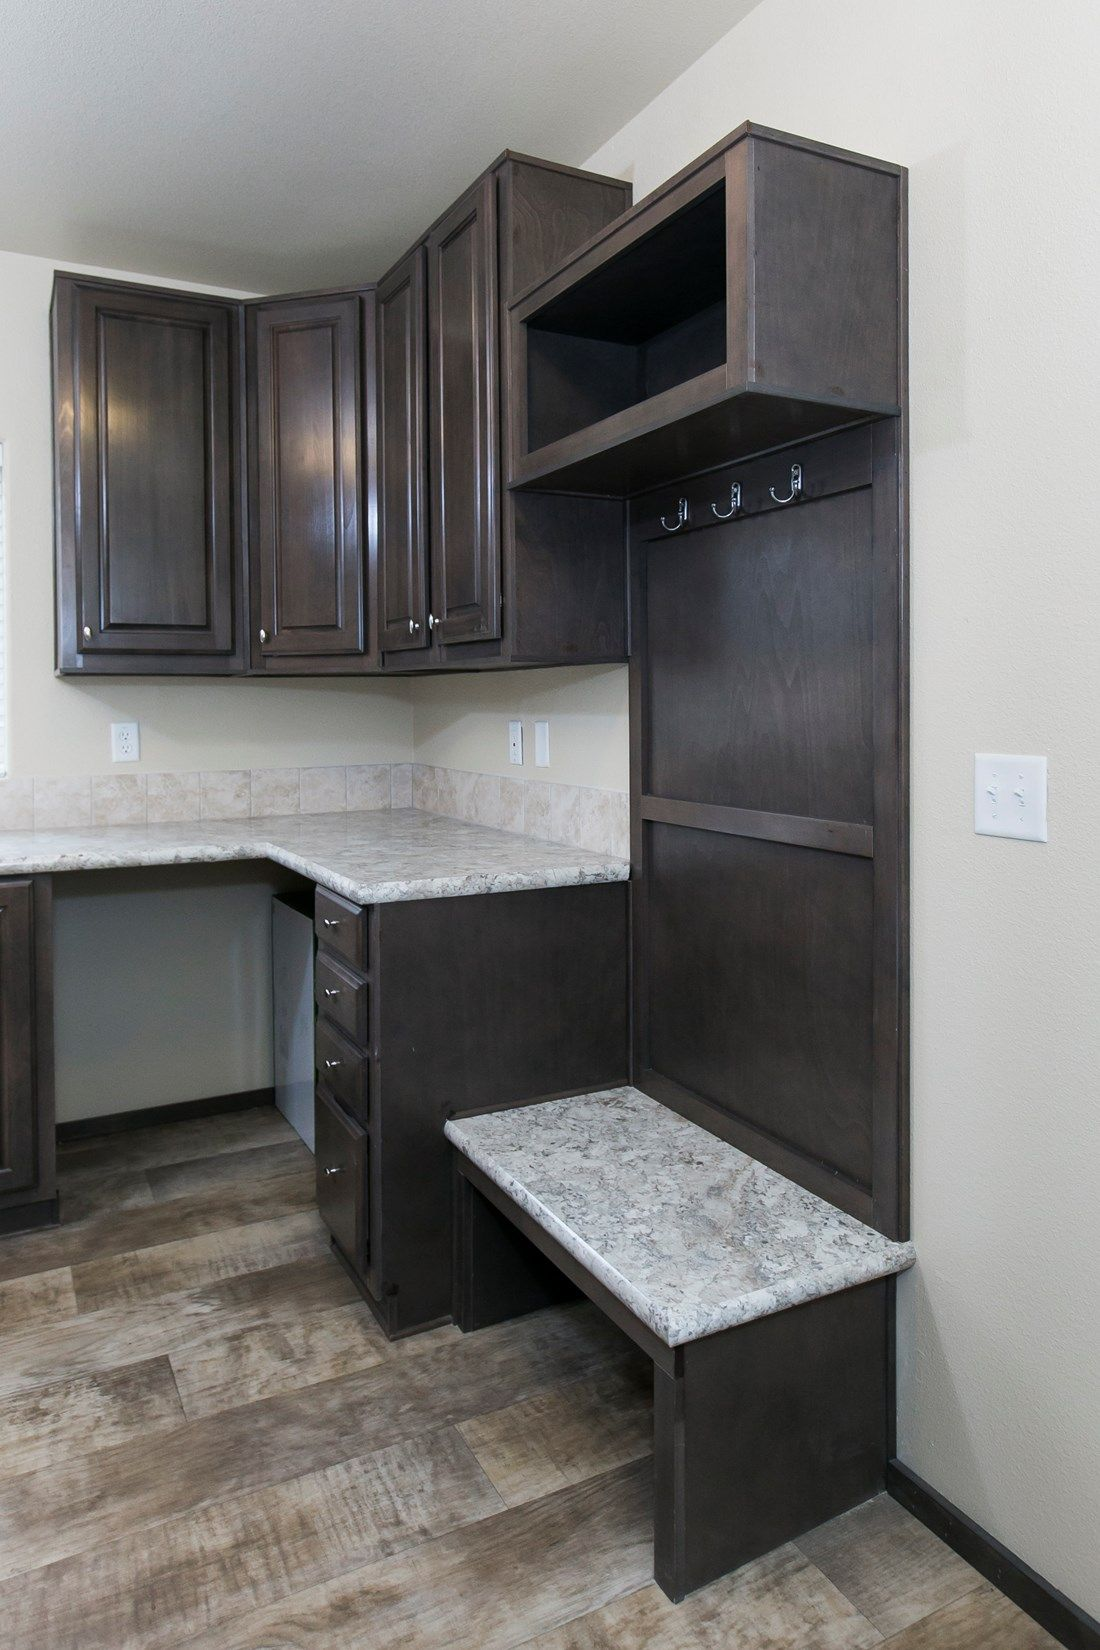 The 2023 COLUMBIA RIVER Utility Room. This Manufactured Mobile Home features 3 bedrooms and 2 baths.